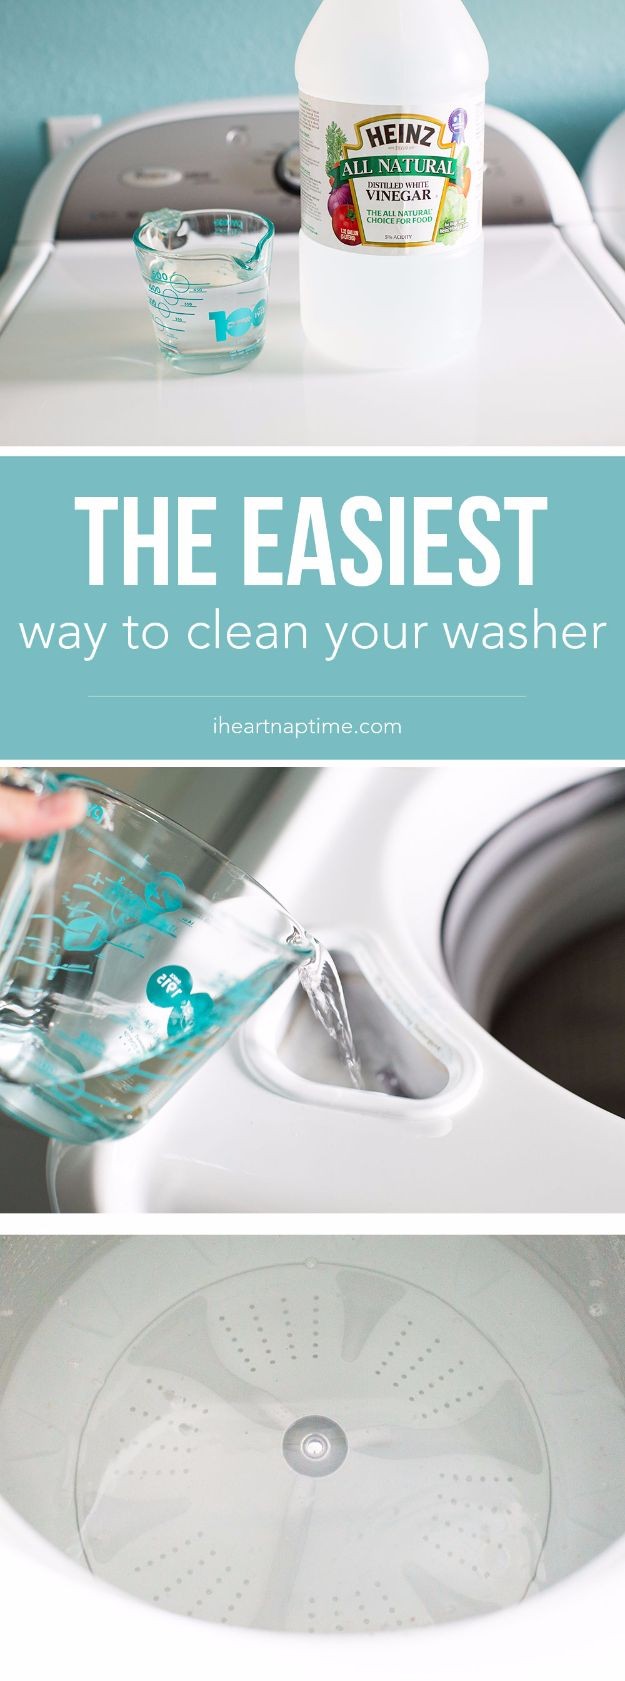 Best Spring Cleaning Ideas - Easiest Way to Clean Your Washer - Easy Cleaning Tips For Home - DIY Cleaning Hacks and Product Recipes - Tips and Tricks for Cleaning the Bathroom, Kitchen, Floors and Countertops - Cheap Solutions for A Clean House #springcleaning